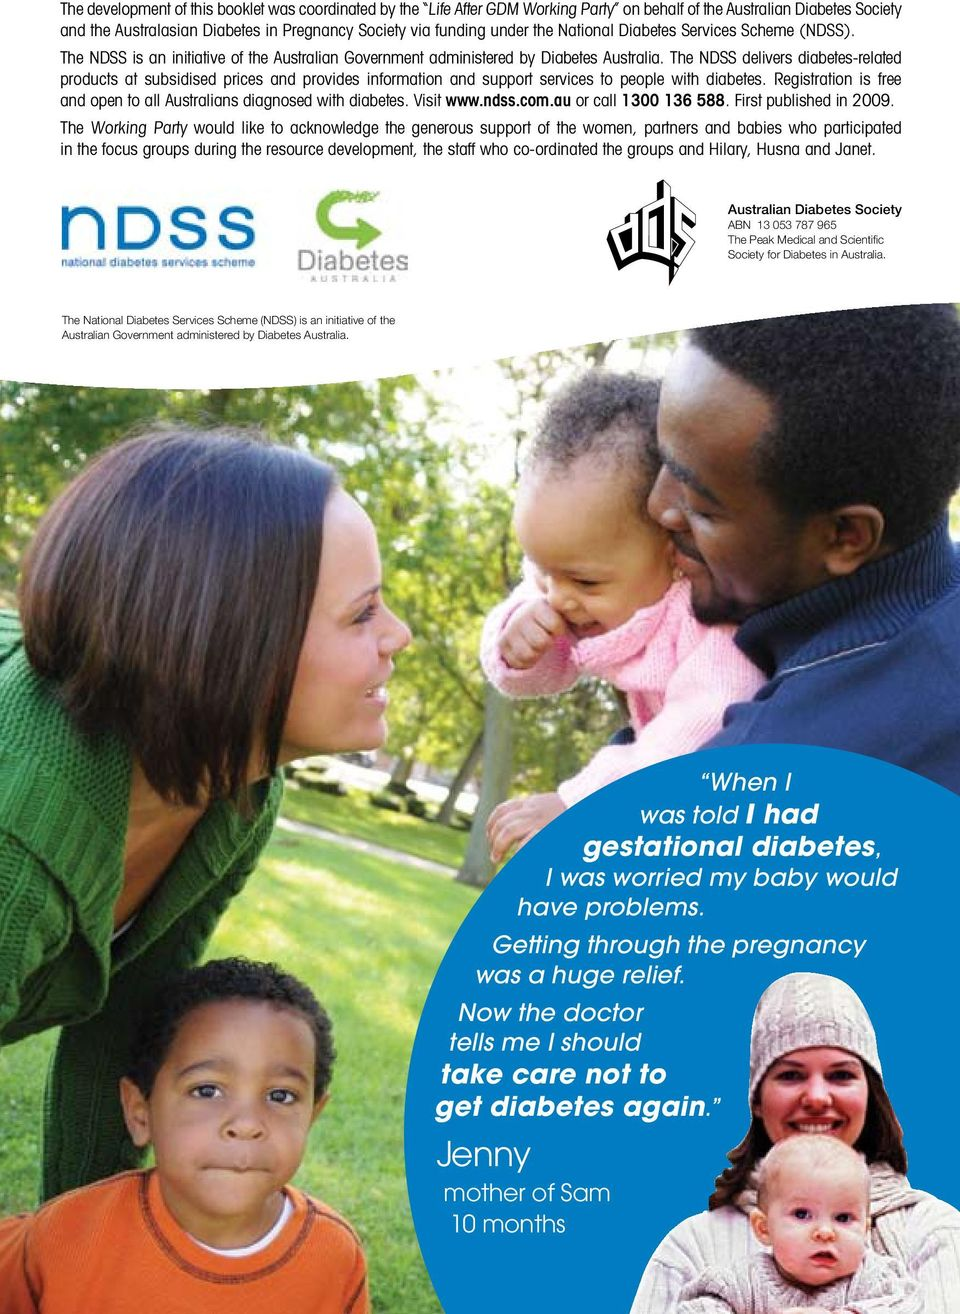 The NDSS delivers diabetes-related products at subsidised prices and provides information and support services to people with diabetes.